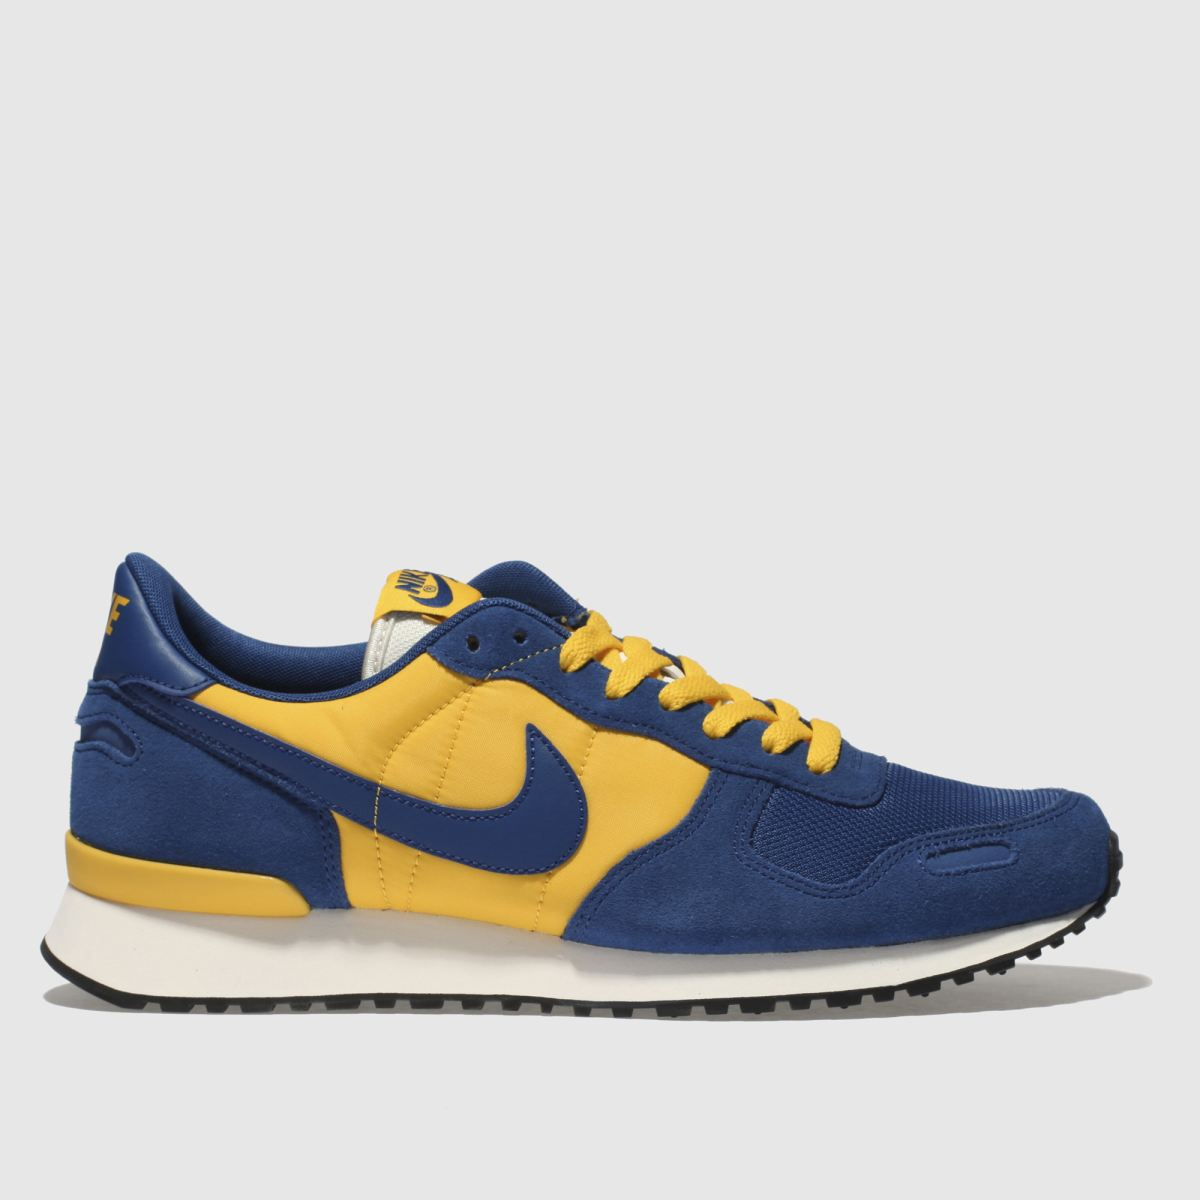 Nike Blue & Yellow Air Vortex Trainers